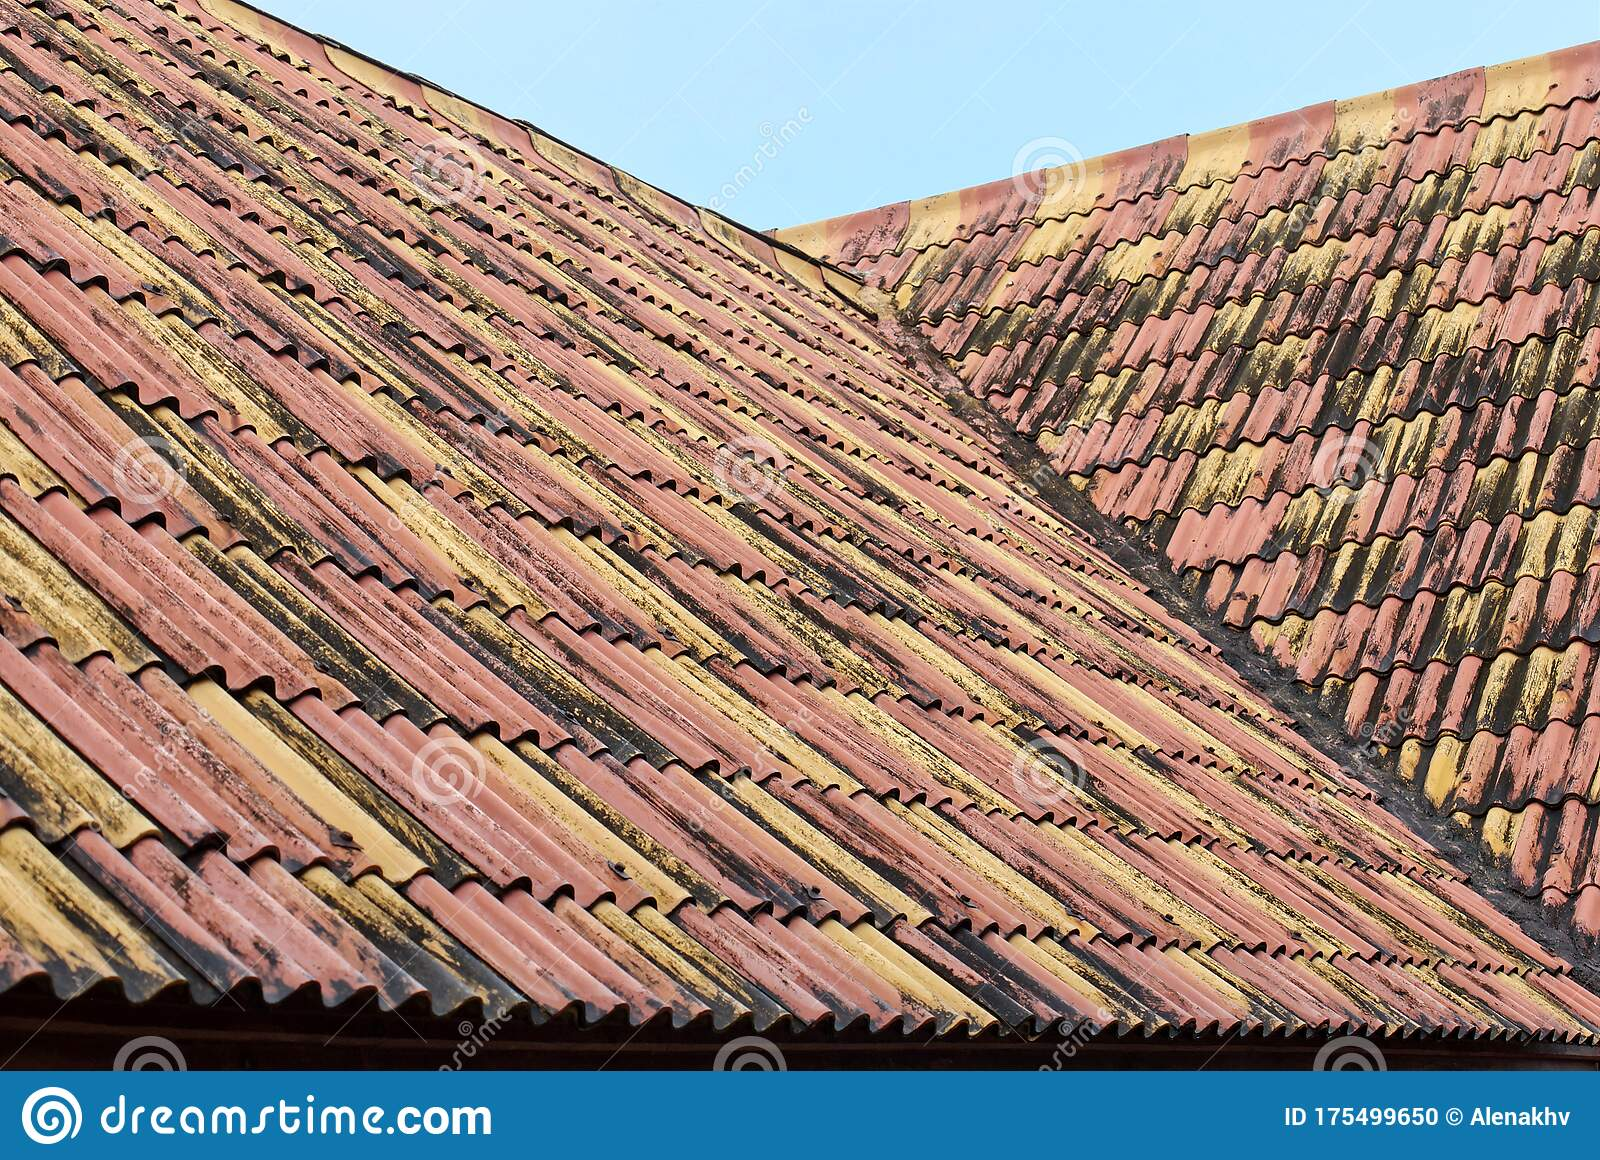 old weathered roof tiles close up of roof waved textures in red and yellow colors colored tiles form a pattern stock photo image of orange color 175499650